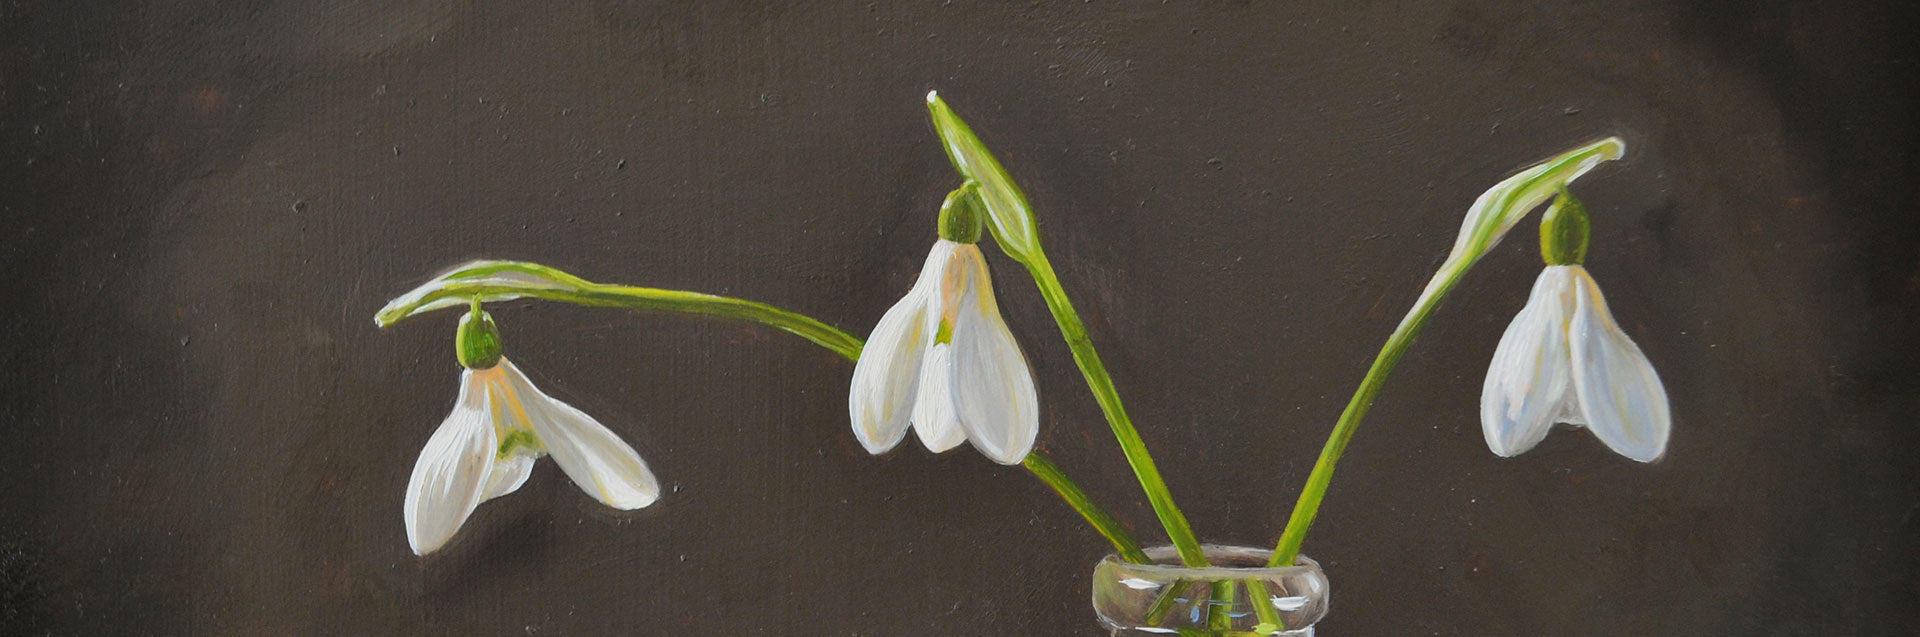 Snowdrops painting series - behind the scenes